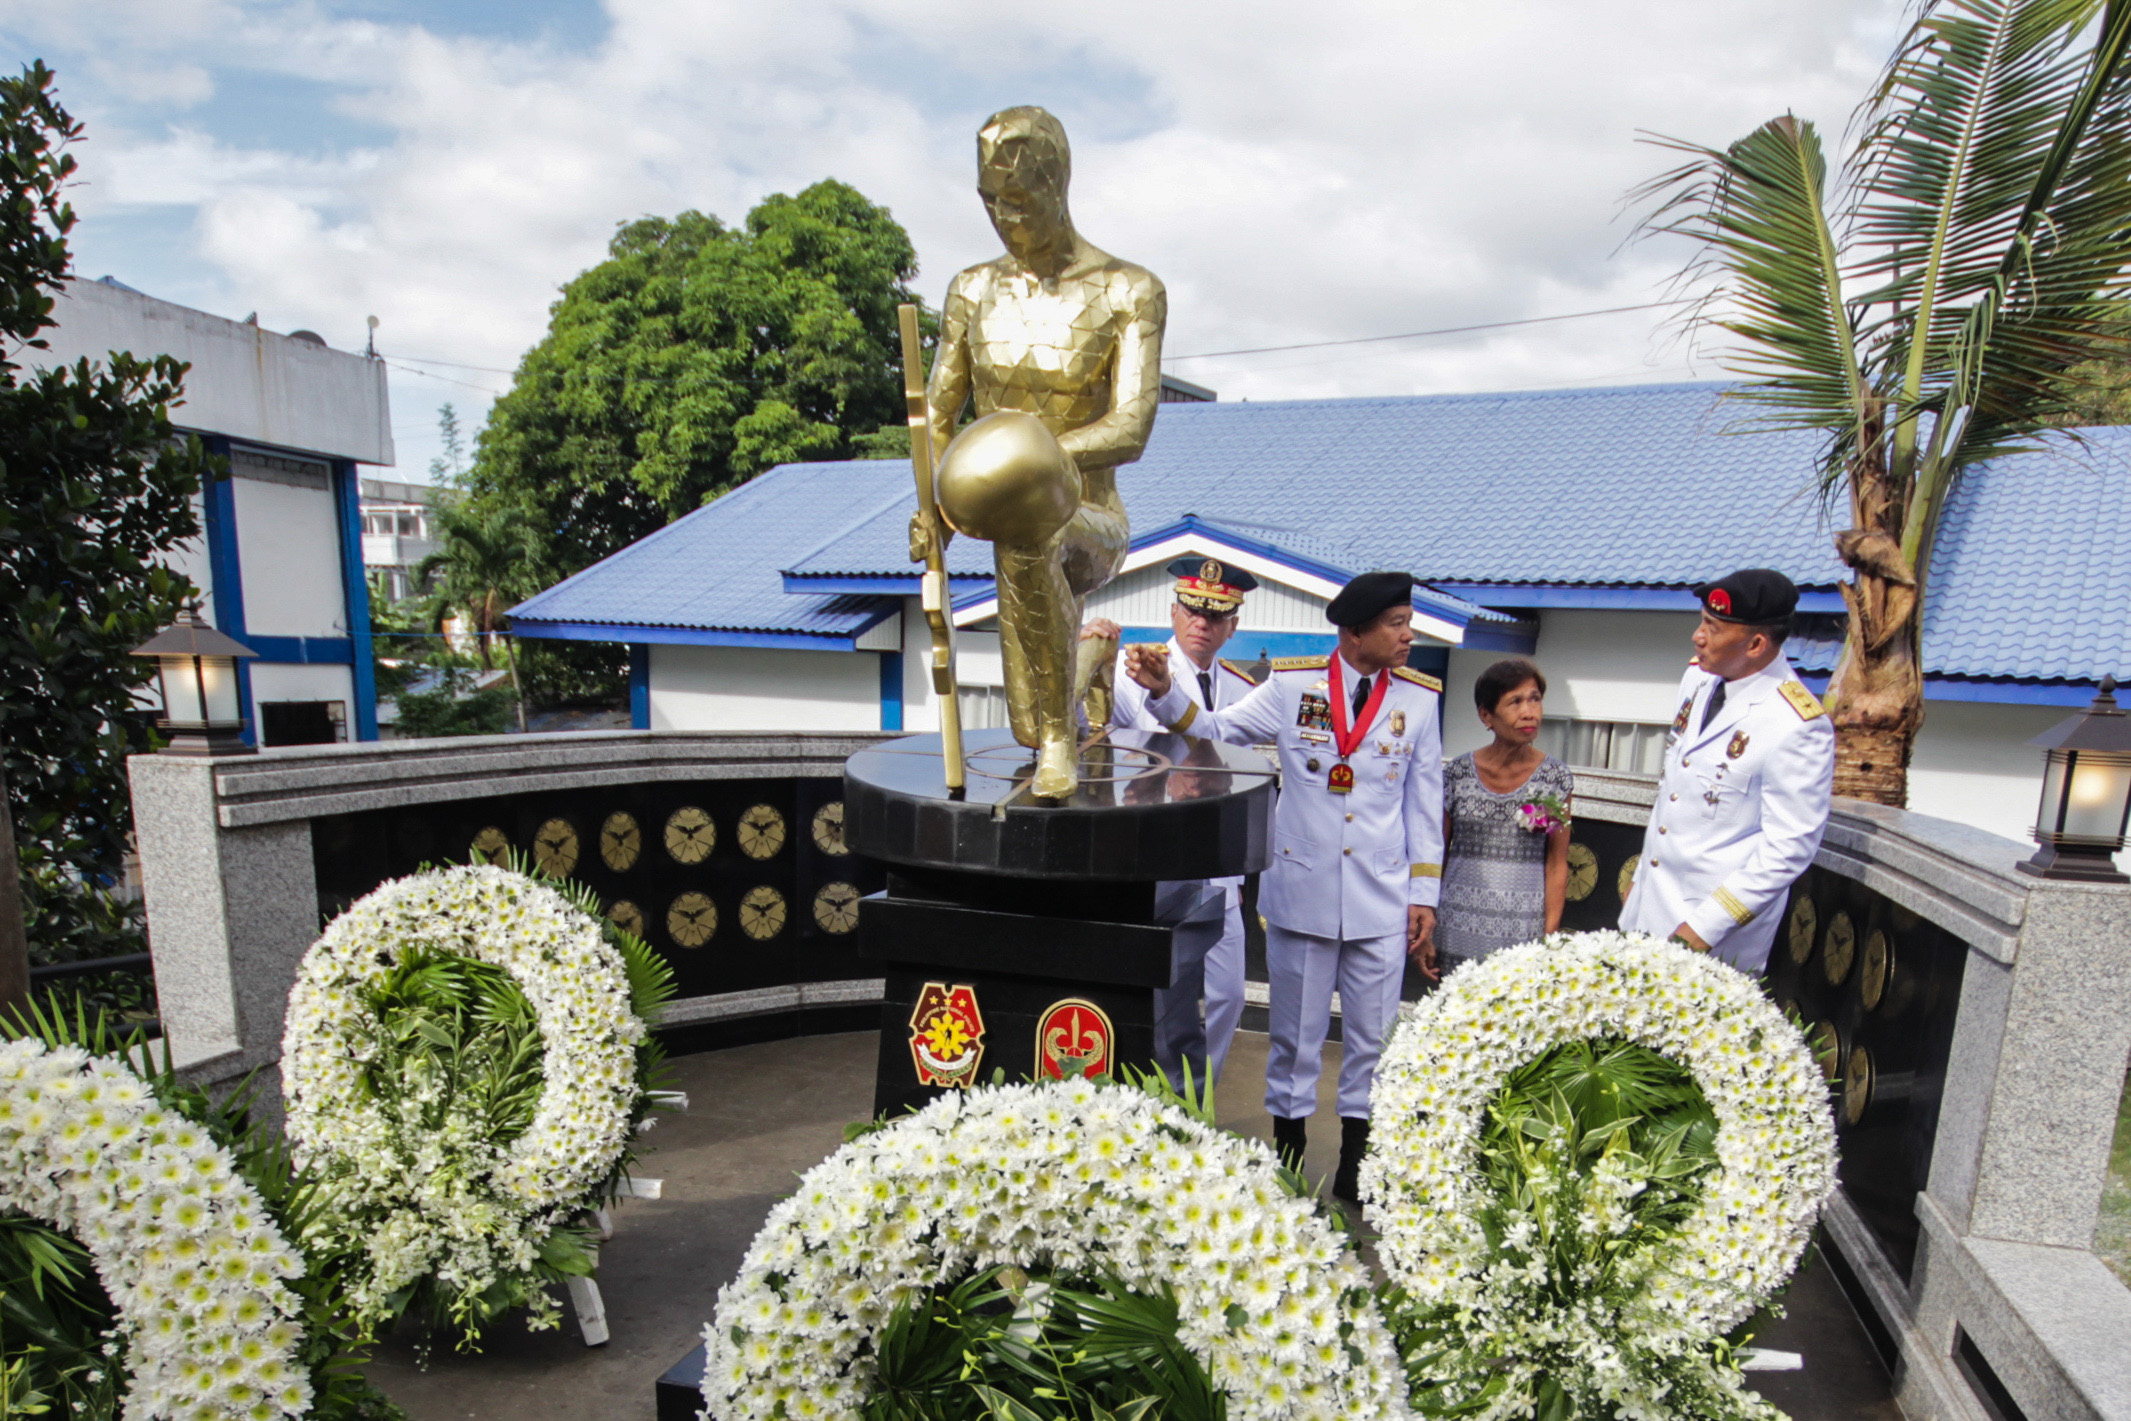 WREATH-LAYING. Police officials offer wreaths in remembrance of the fallen SAF 44. Photo by Lito Borras/Rappler